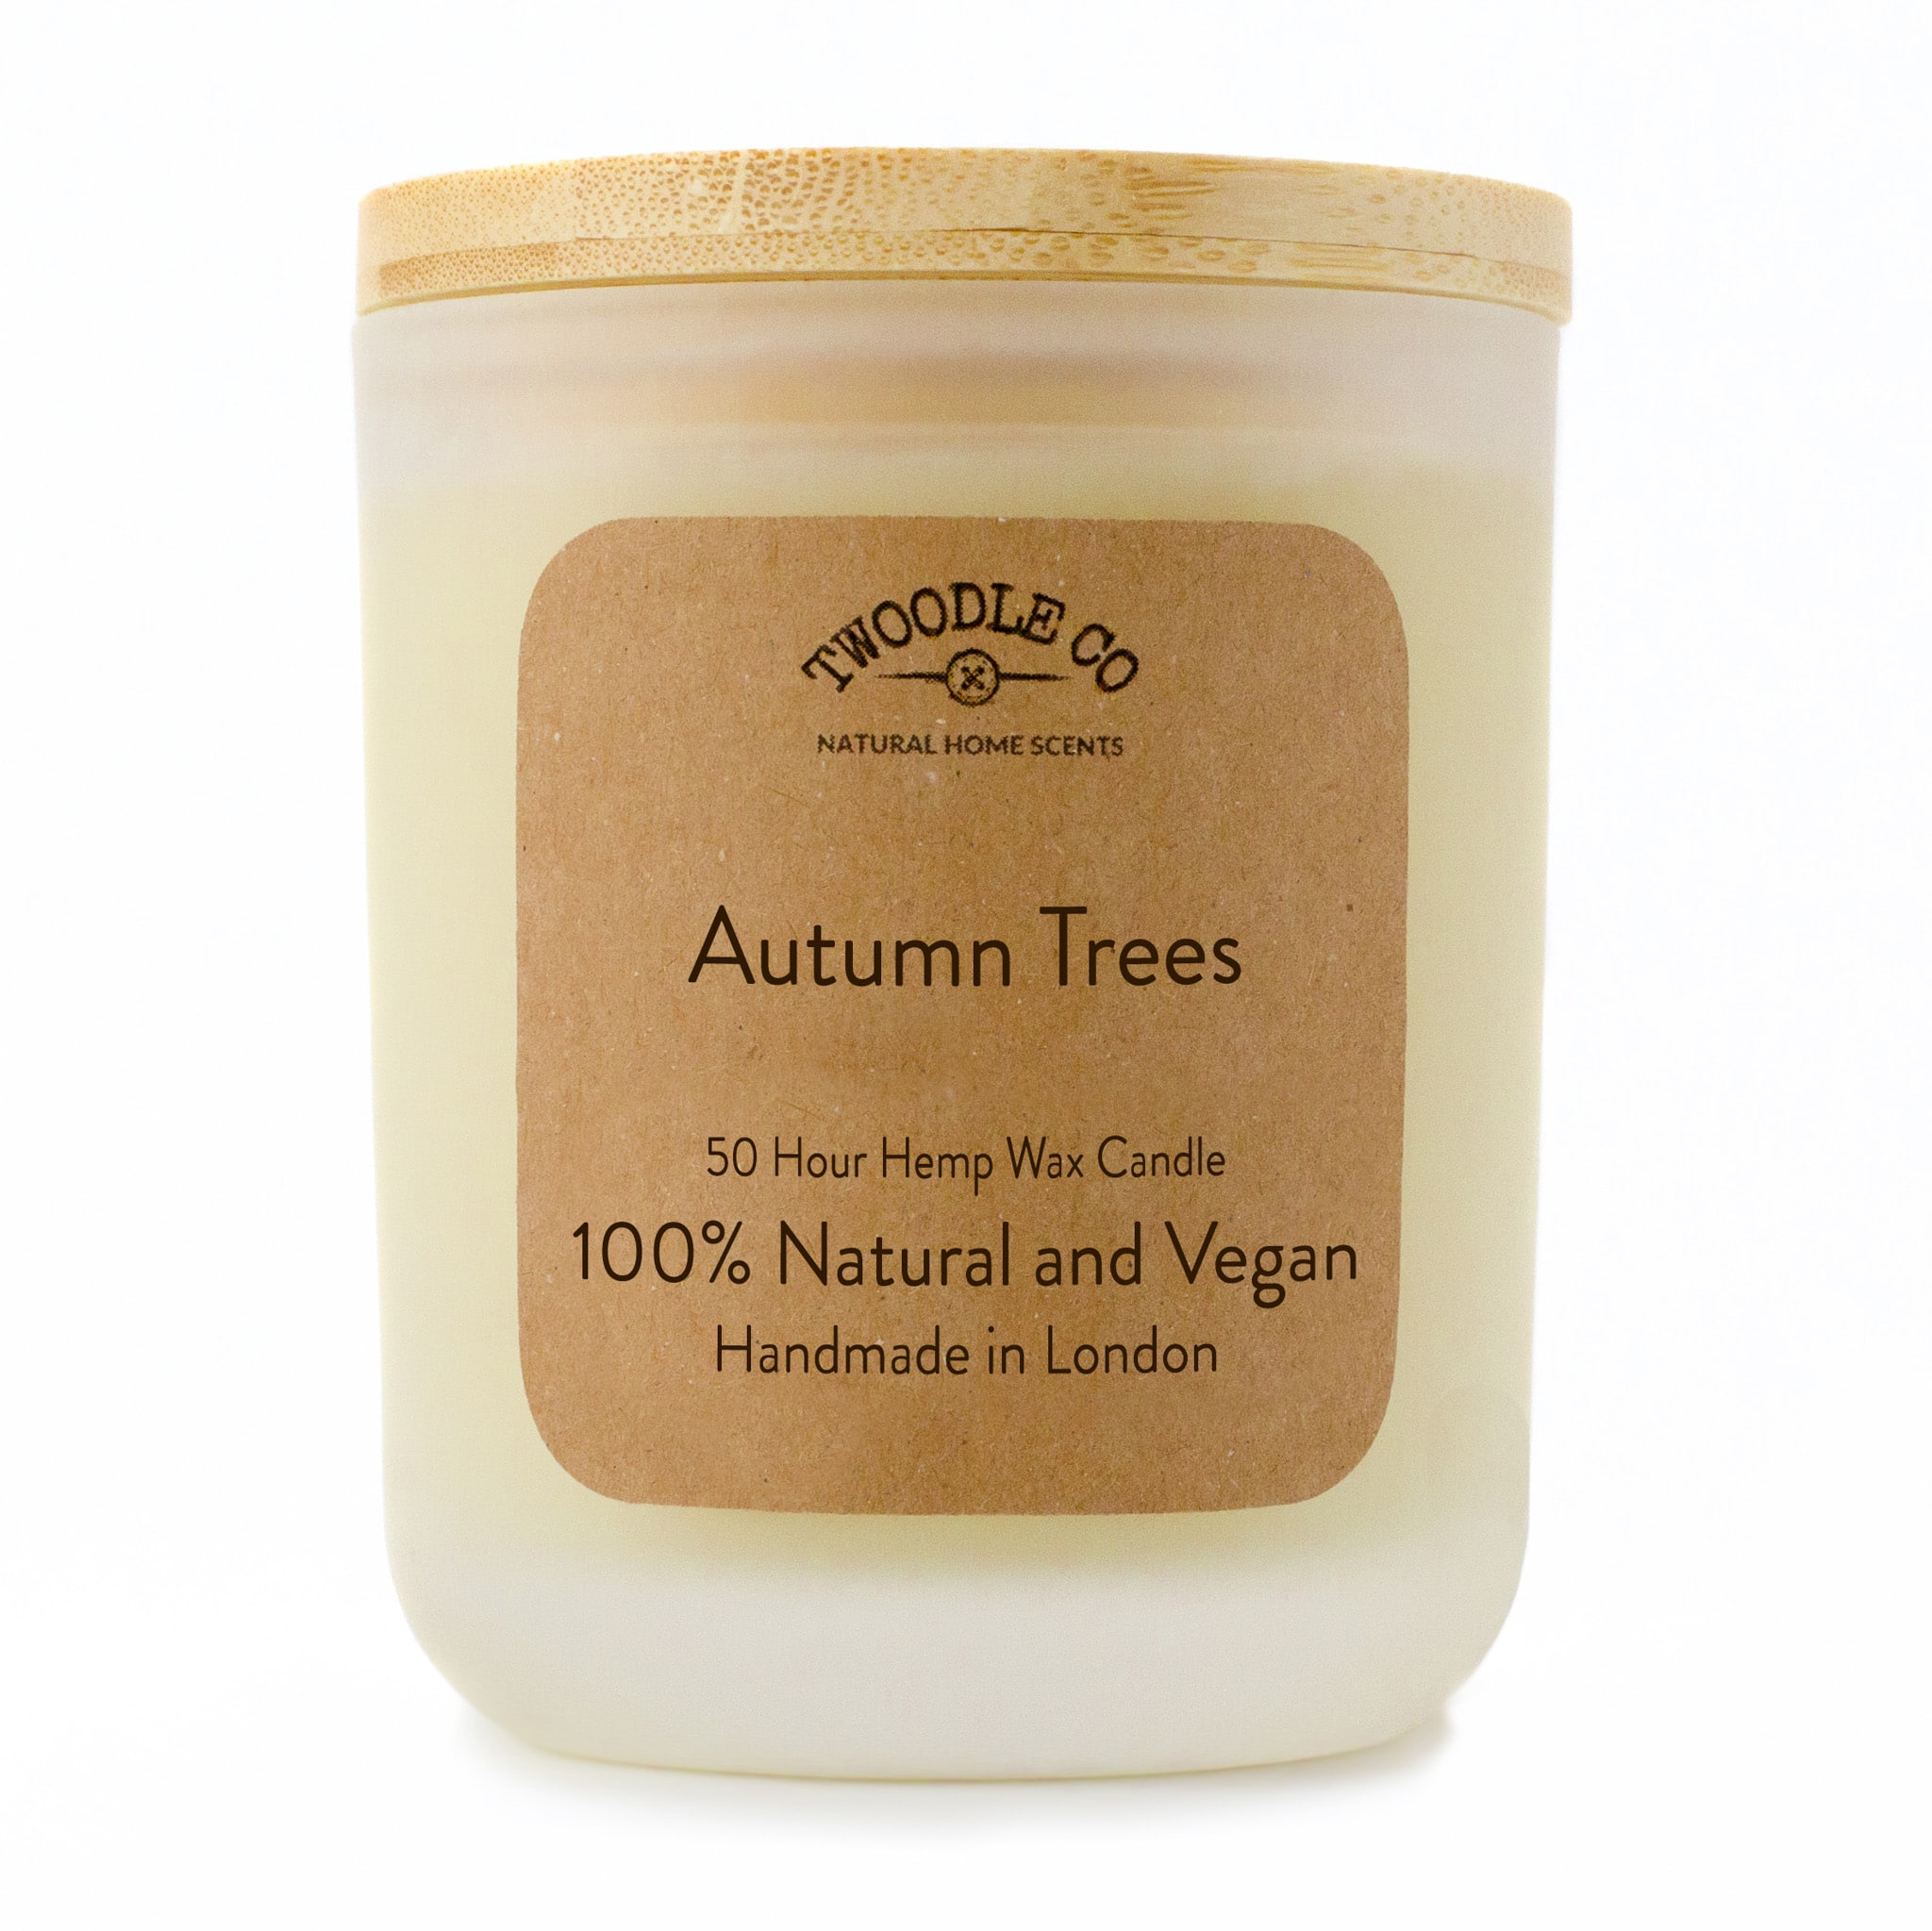 Twoodle Co Medium Scented Candle Autumn Trees